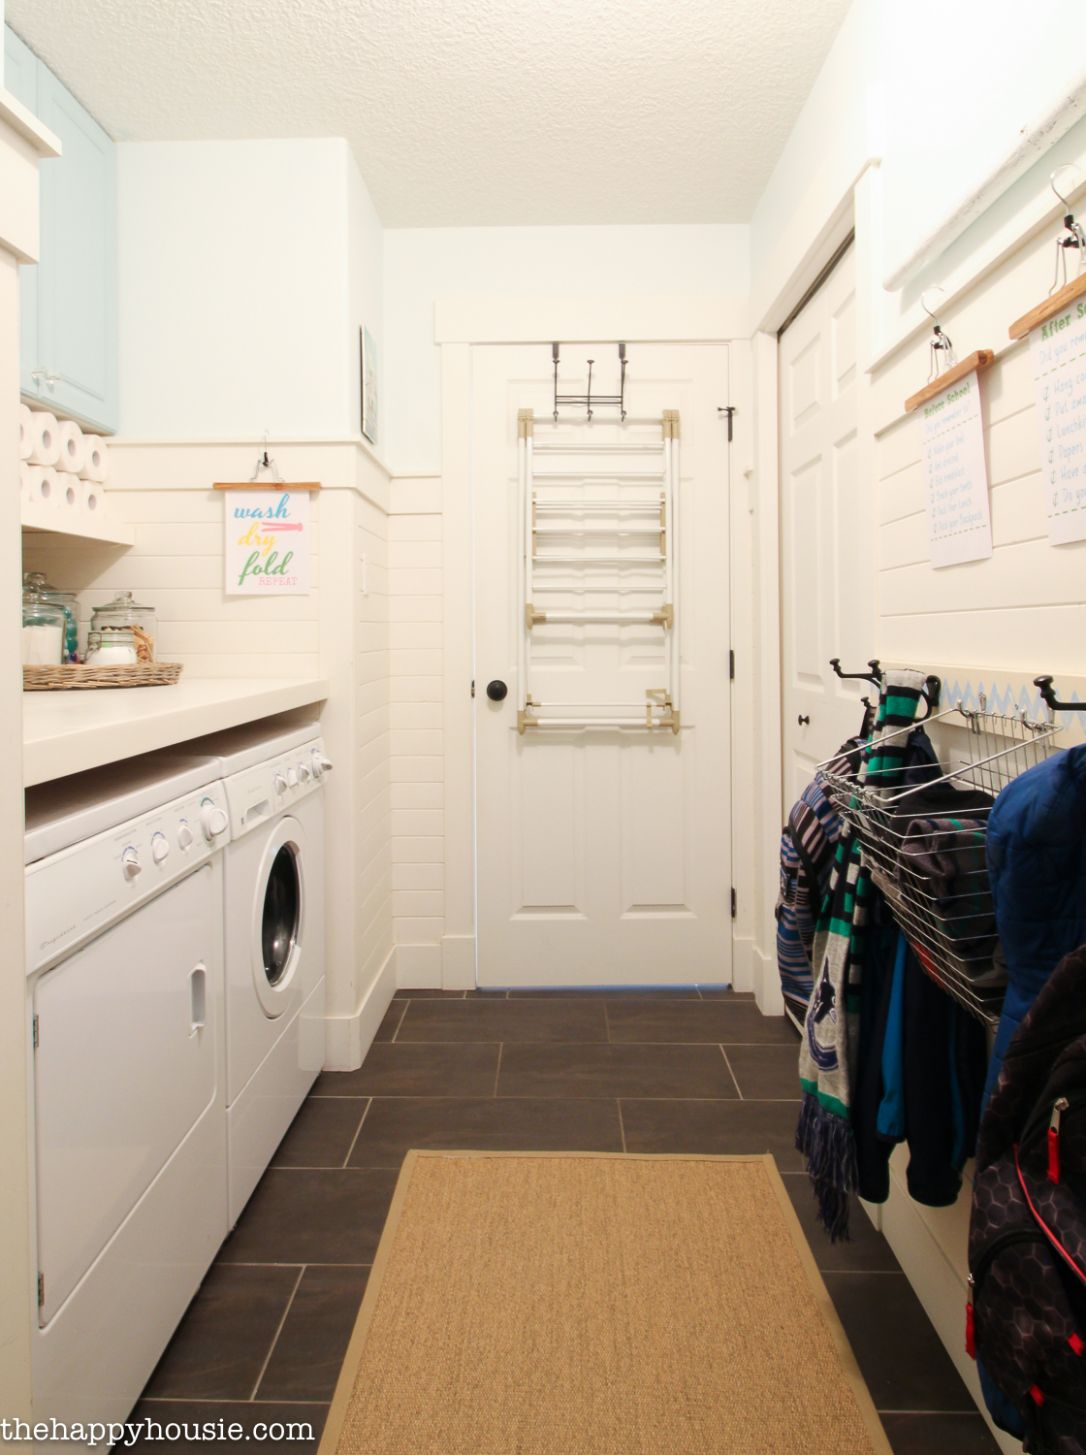 12 mudroom laundry room ideas – frogtown gardens - mudroom laundry room makeover ideas